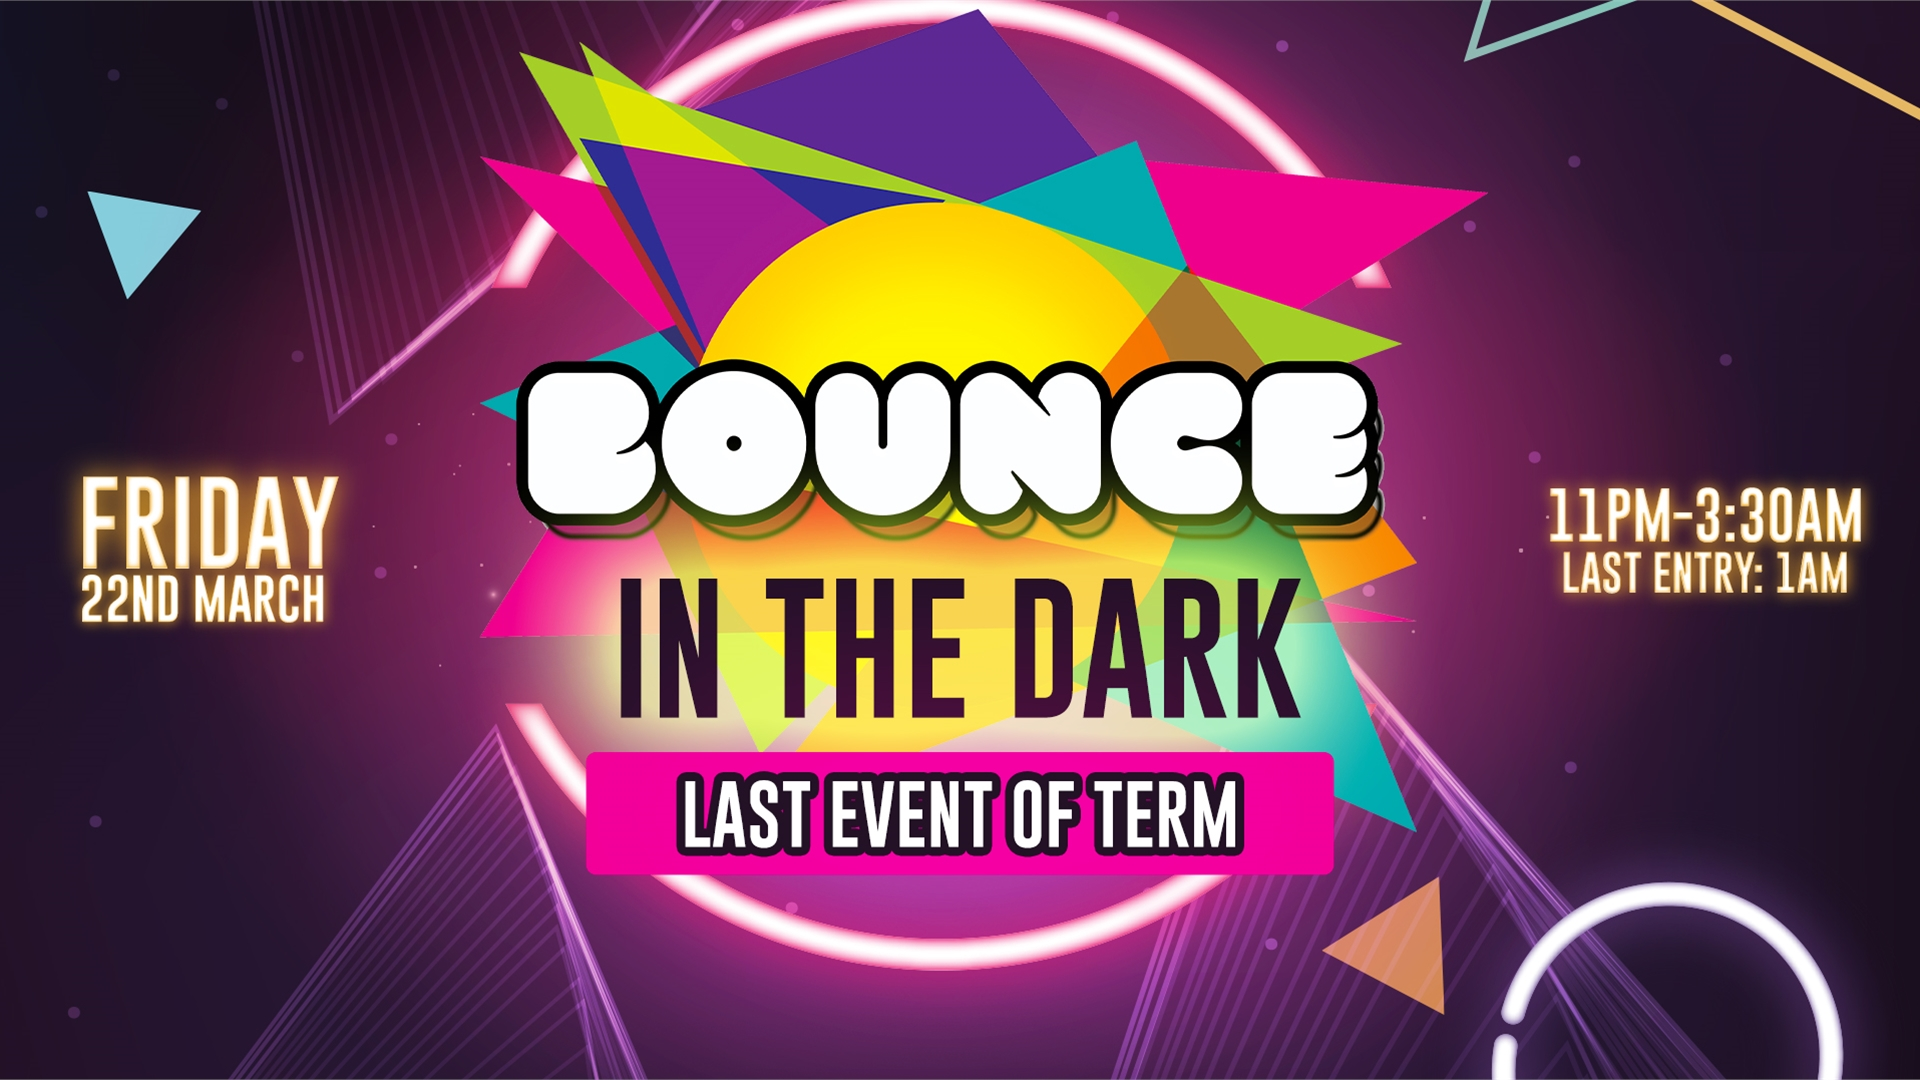 BOUNCE IN THE DARK (LAST BOUNCE OF TERM) - HIP-HOP, HOUSE, AND RnB ANTHEMS!